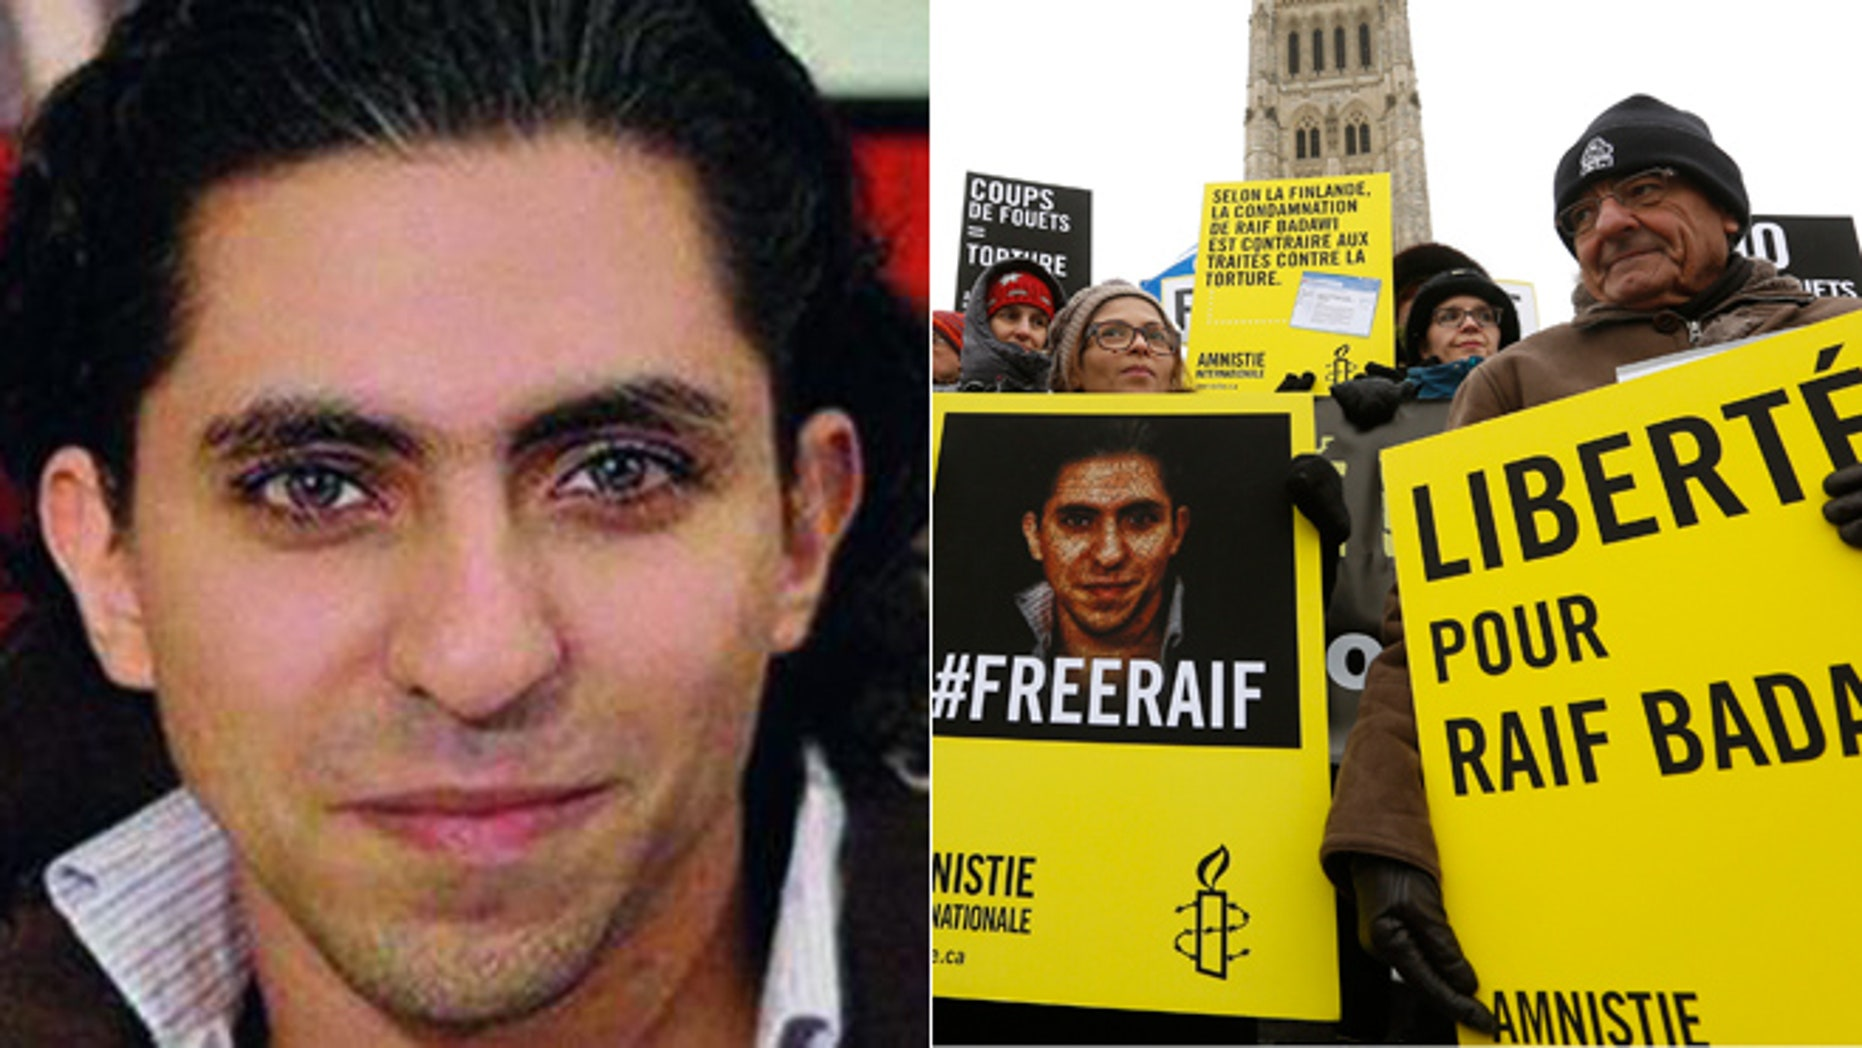 Raif Badawi was sentenced to 1,000 lashes and 10 years in prison for criticizing Islam, sparking international outcry.